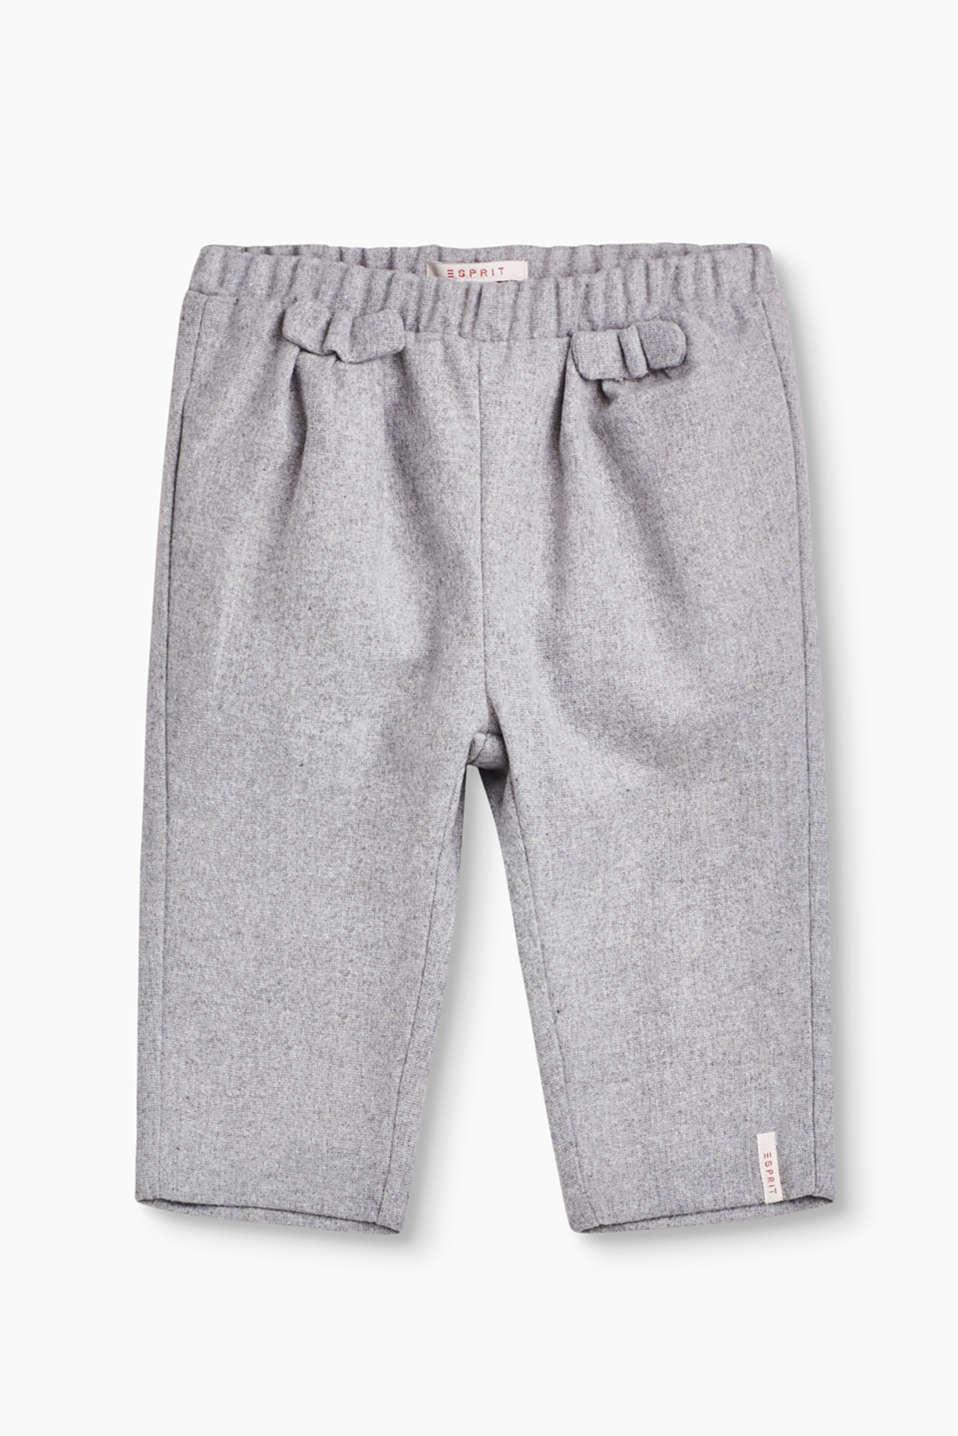 These comfortable, yet chic soft flannel trousers in a tracksuit style are perfect for tiny, active tots.